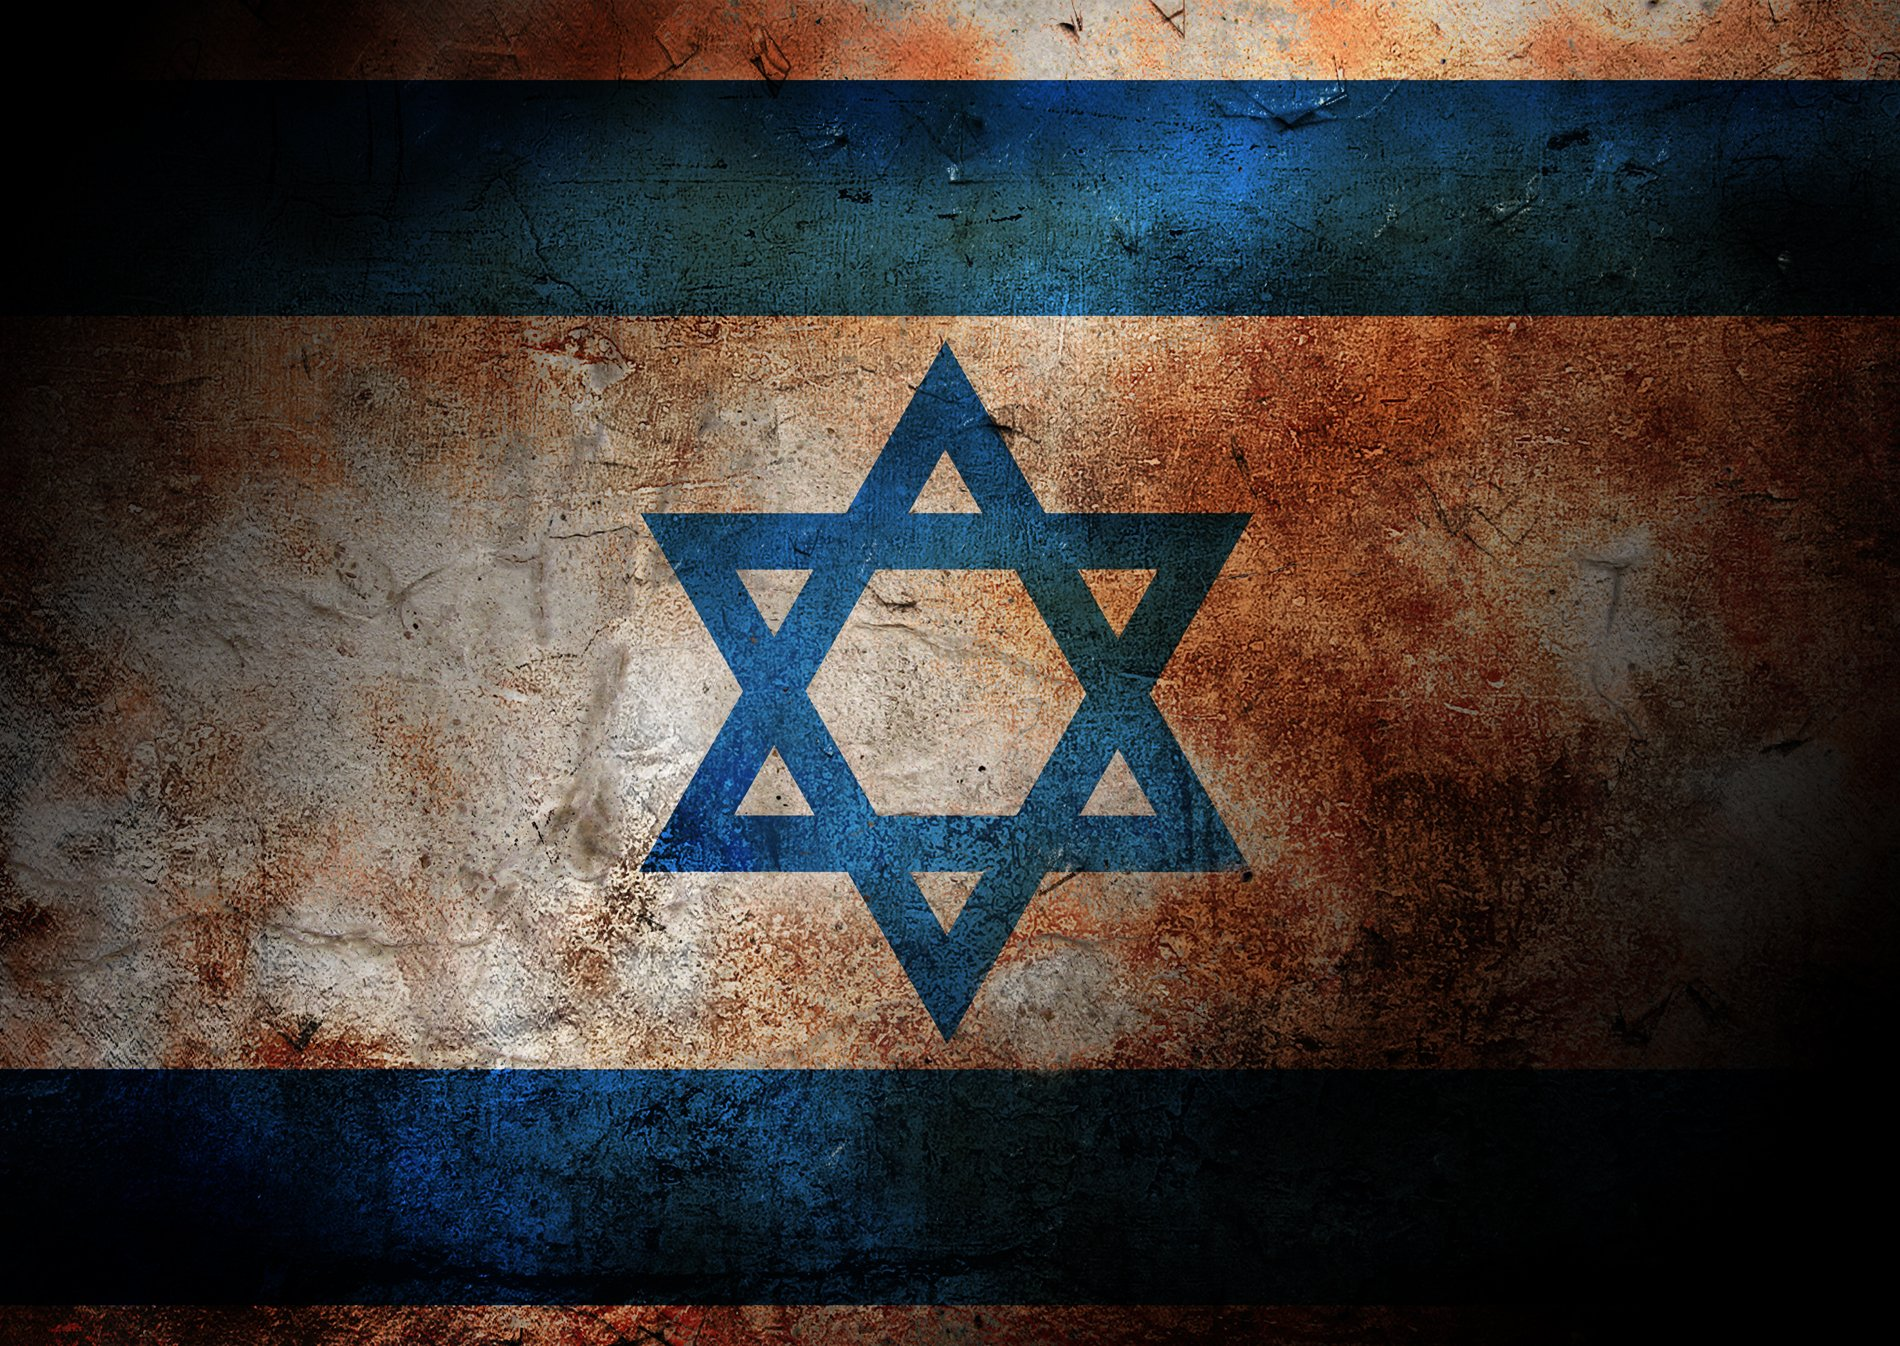 Download Grunge Israel Wallpaper 1900x1346 Wallpoper 352676 1900x1346